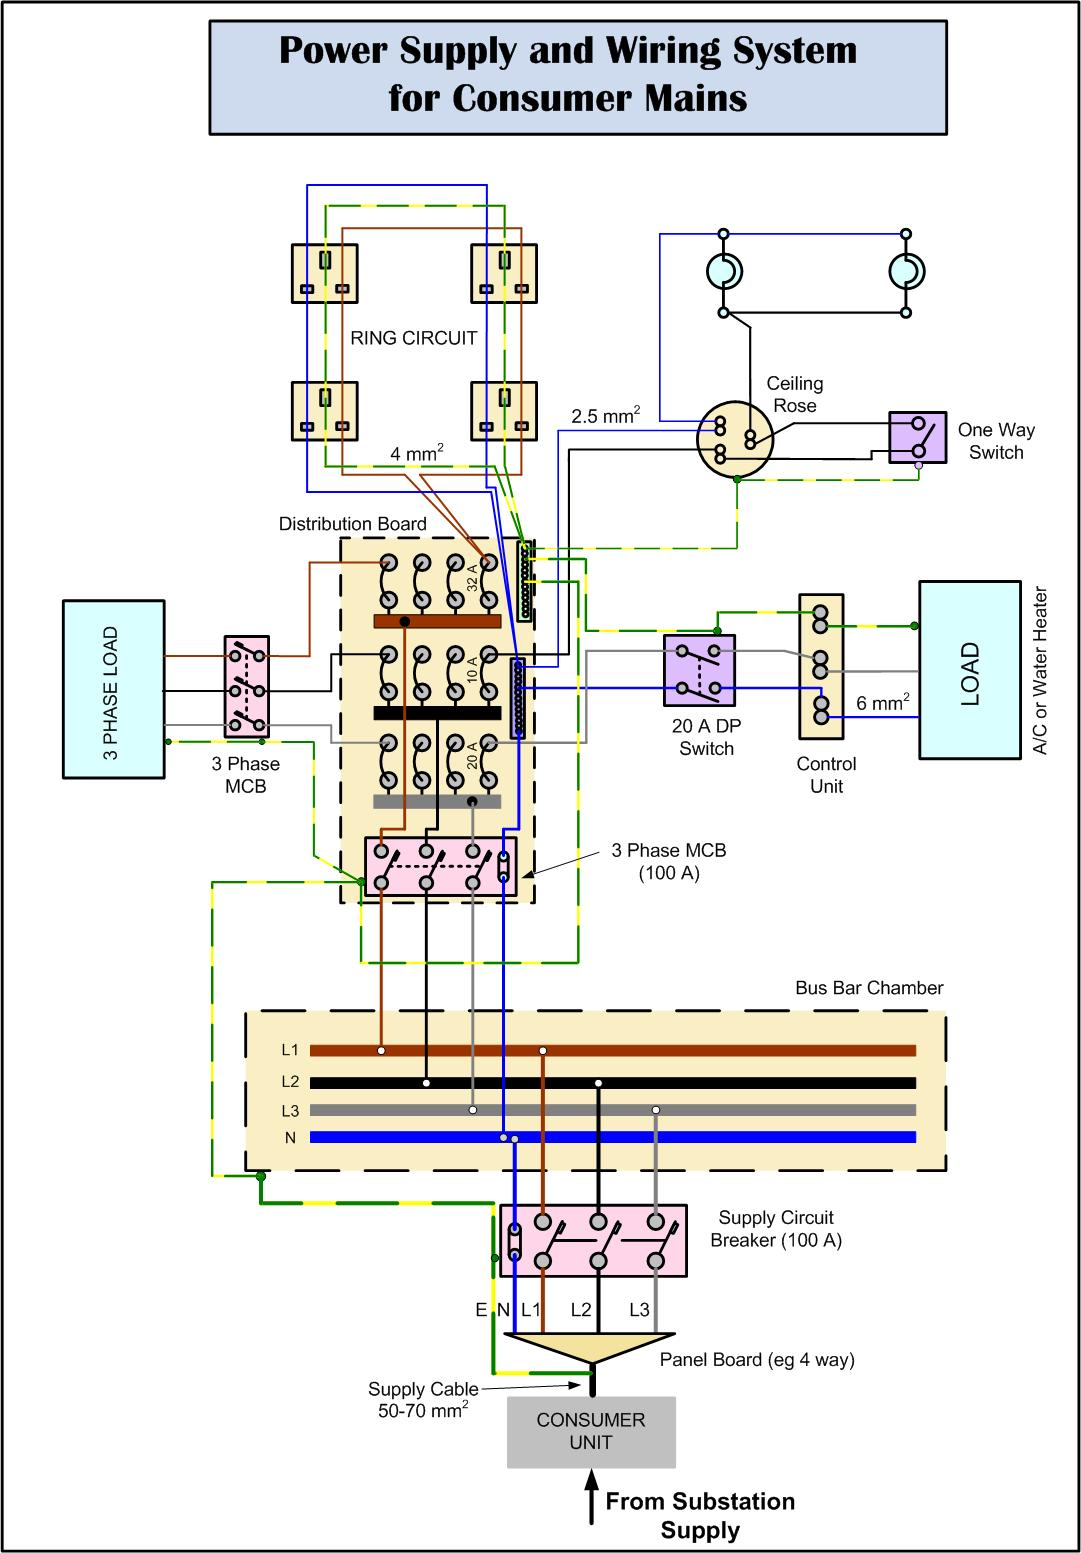 meritor power divider diagram all about repair and wiring meritor power divider diagram domestic wiring diagrams nilzanet single wall lights 4 domestic wiring diagrams